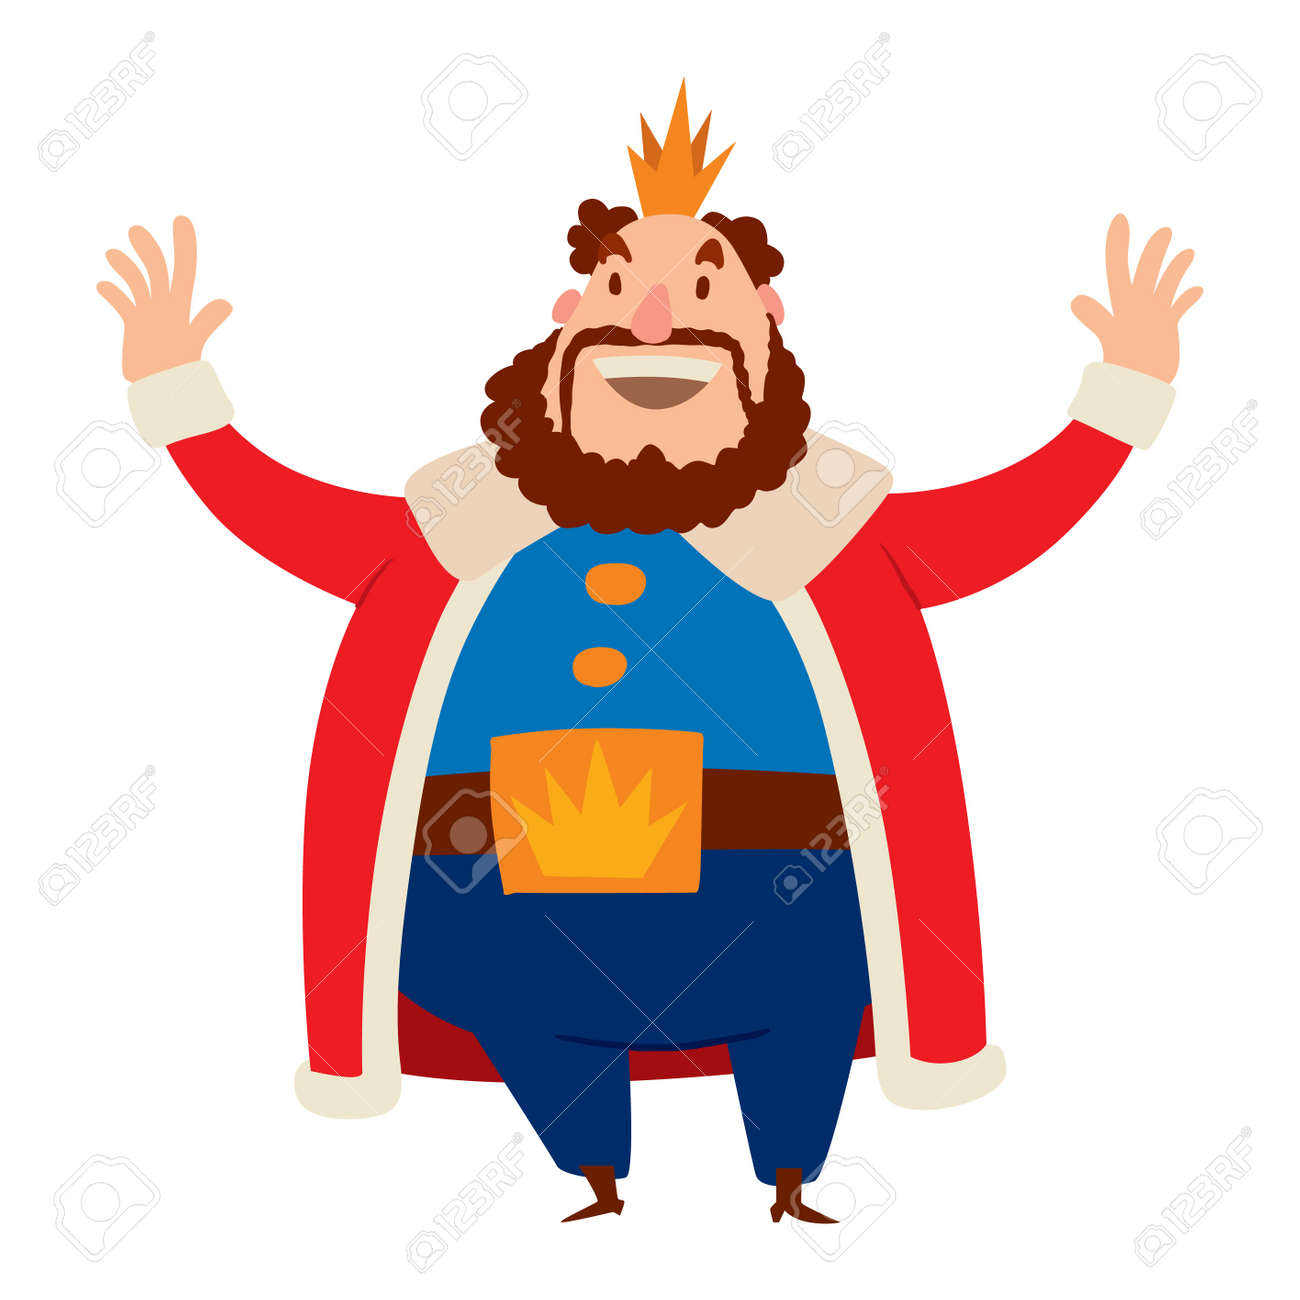 King Cartoon Illustration Character Fantasy Royalty Medieval Royalty Free Cliparts Vectors And Stock Illustration Image 66465564 Check out our medieval crown selection for the very best in unique or custom, handmade pieces from our costume hats & headpieces shops. king cartoon illustration character fantasy royalty medieval